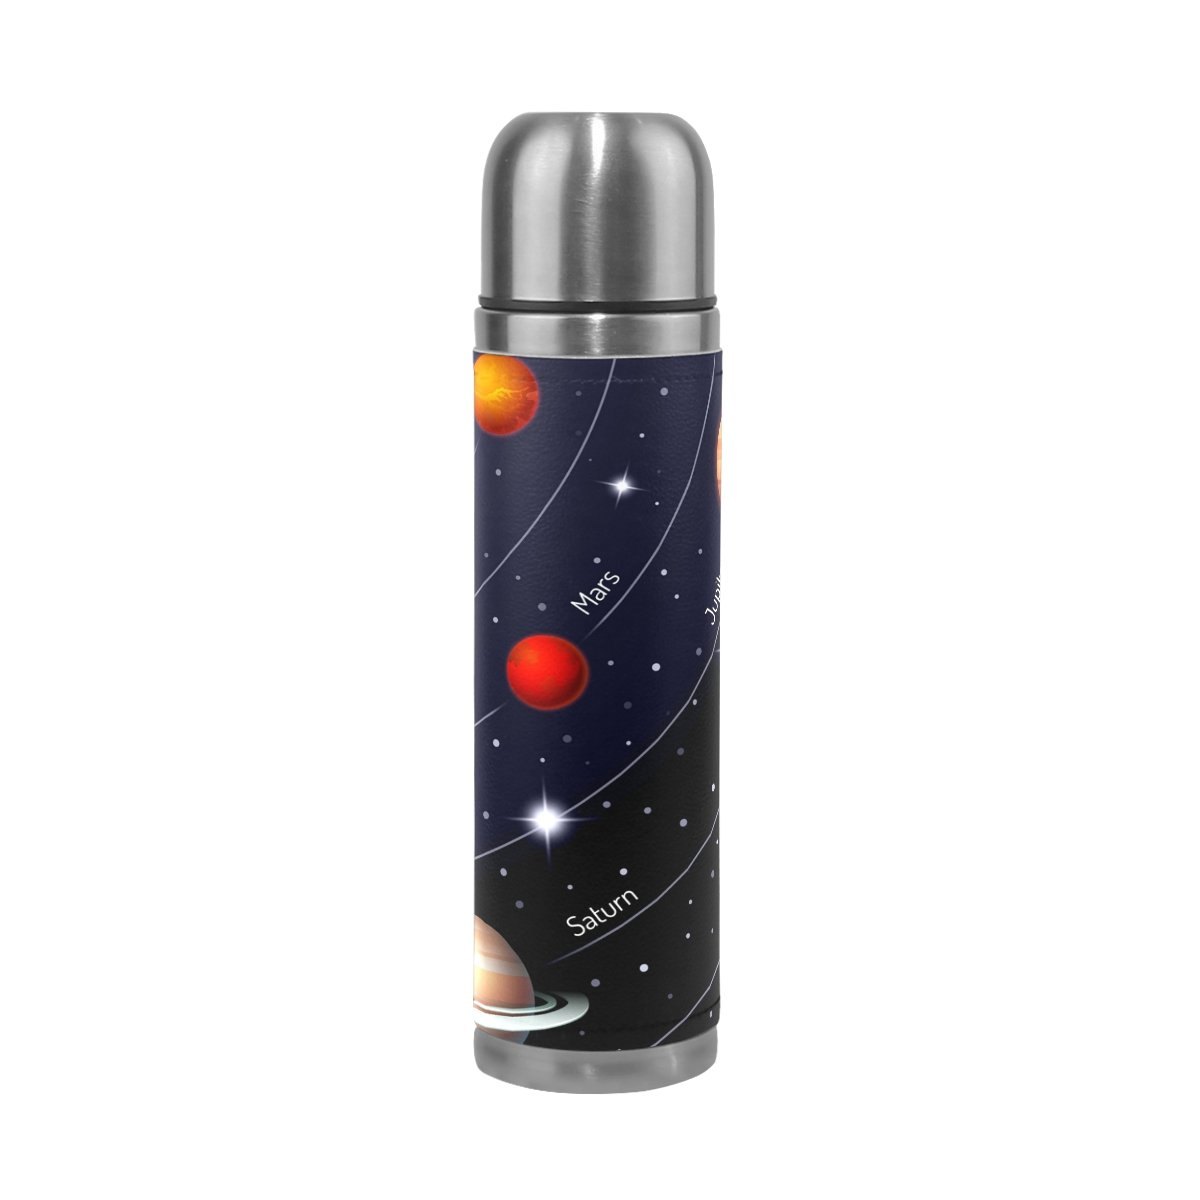 LORVIES Educational Colorful Solar System Stainless Steel Thermos Water Bottle Vacuum Insulated Cup Leak Proof Double Vacuum Bottle, PU Leather Travel Thermal Mug,17 oz